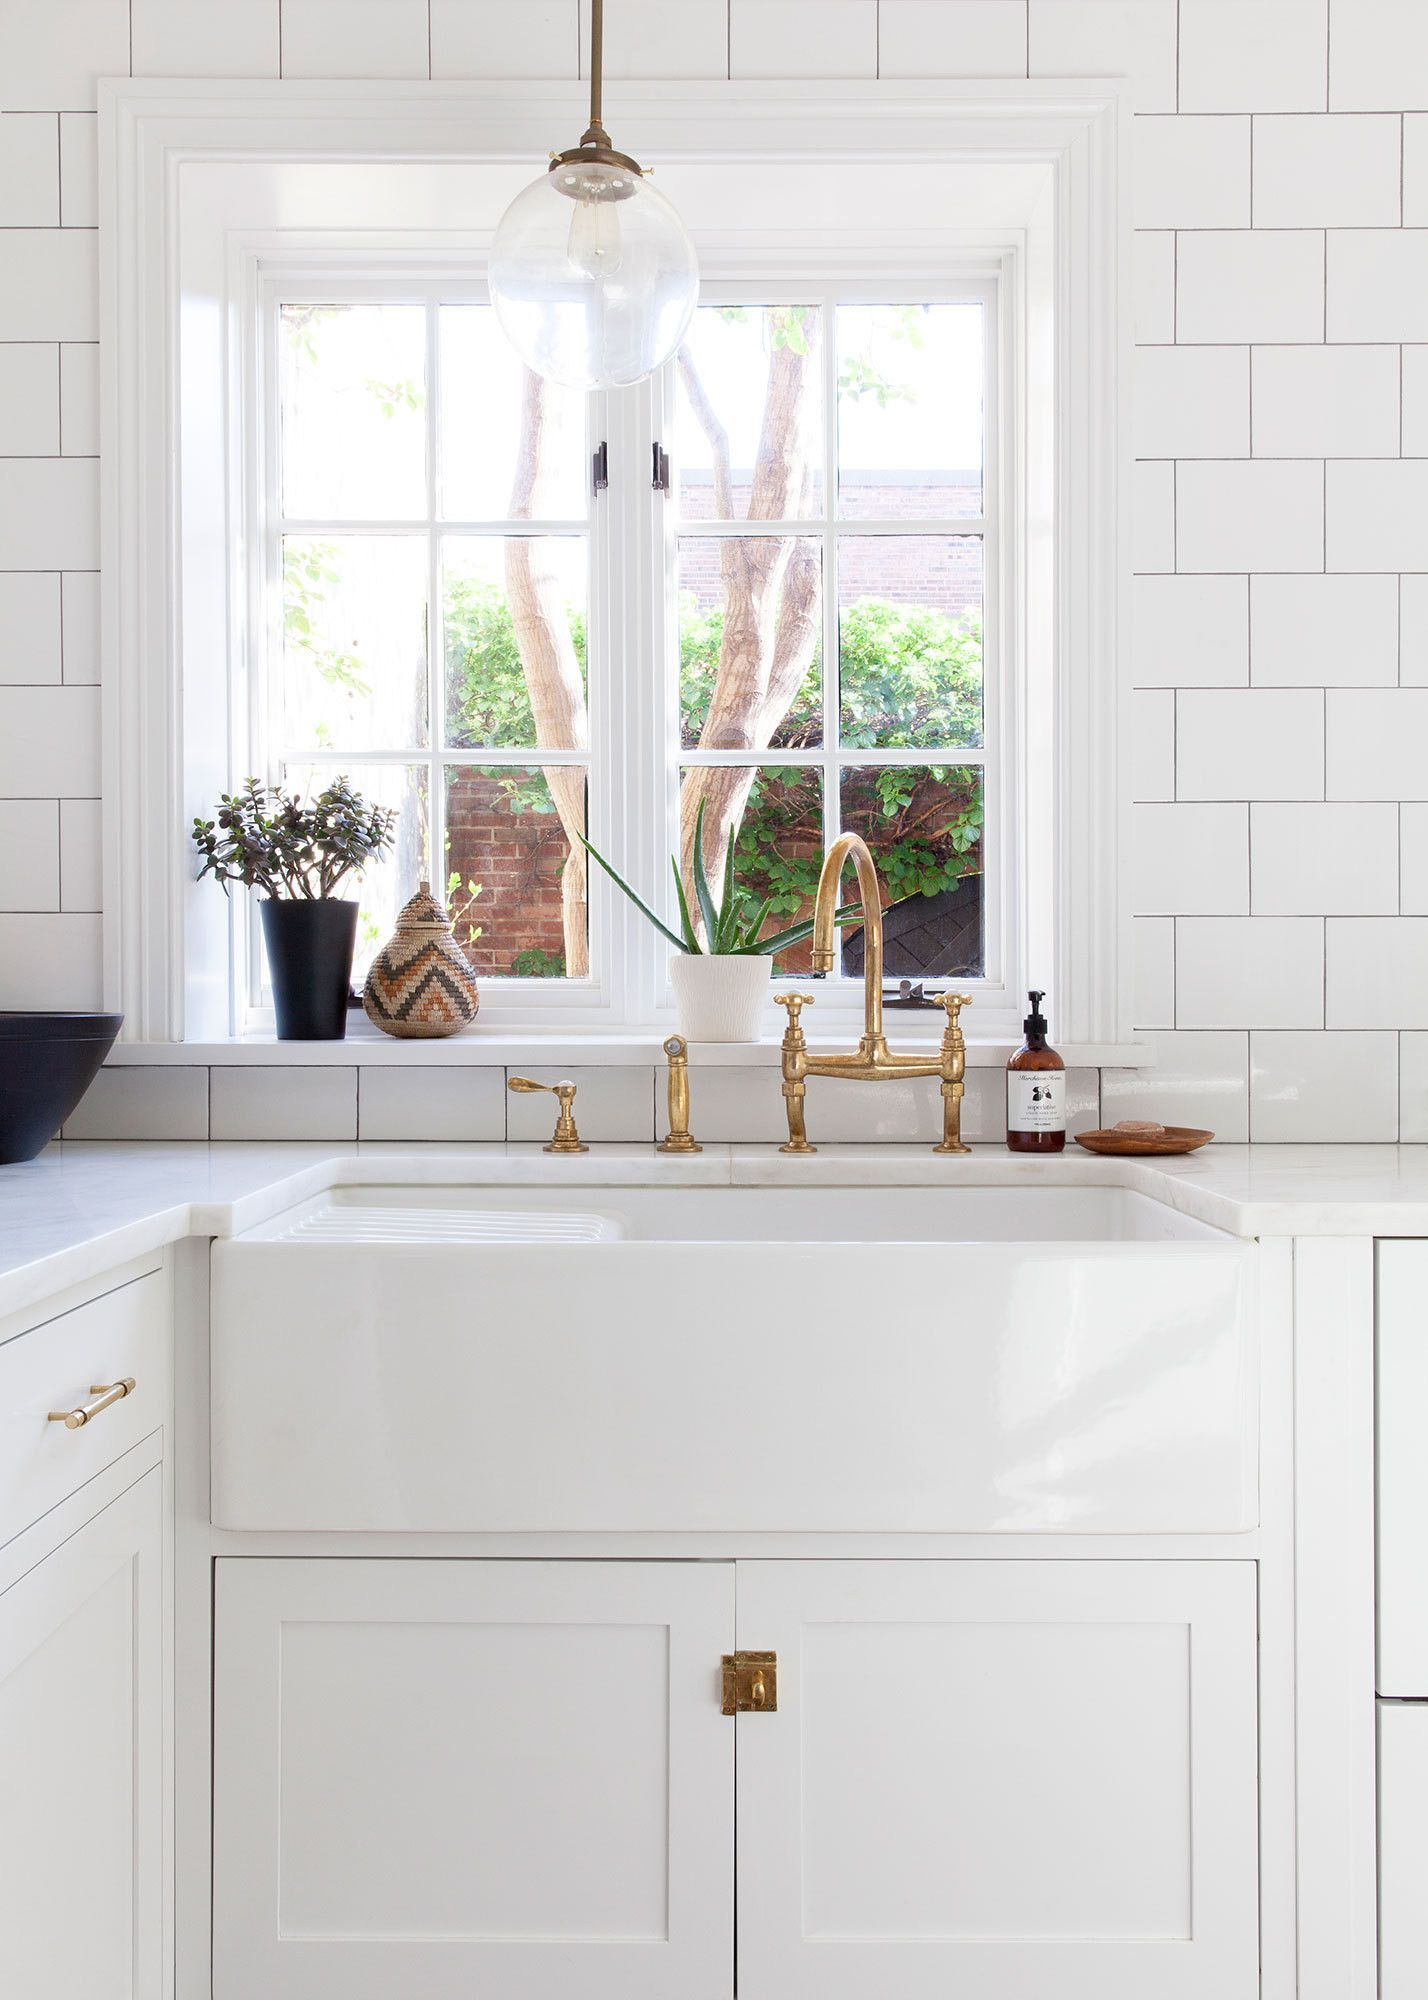 Sliding window over kitchen sink  maybe a glass pendant over kitchen sink in dark metal finish so it